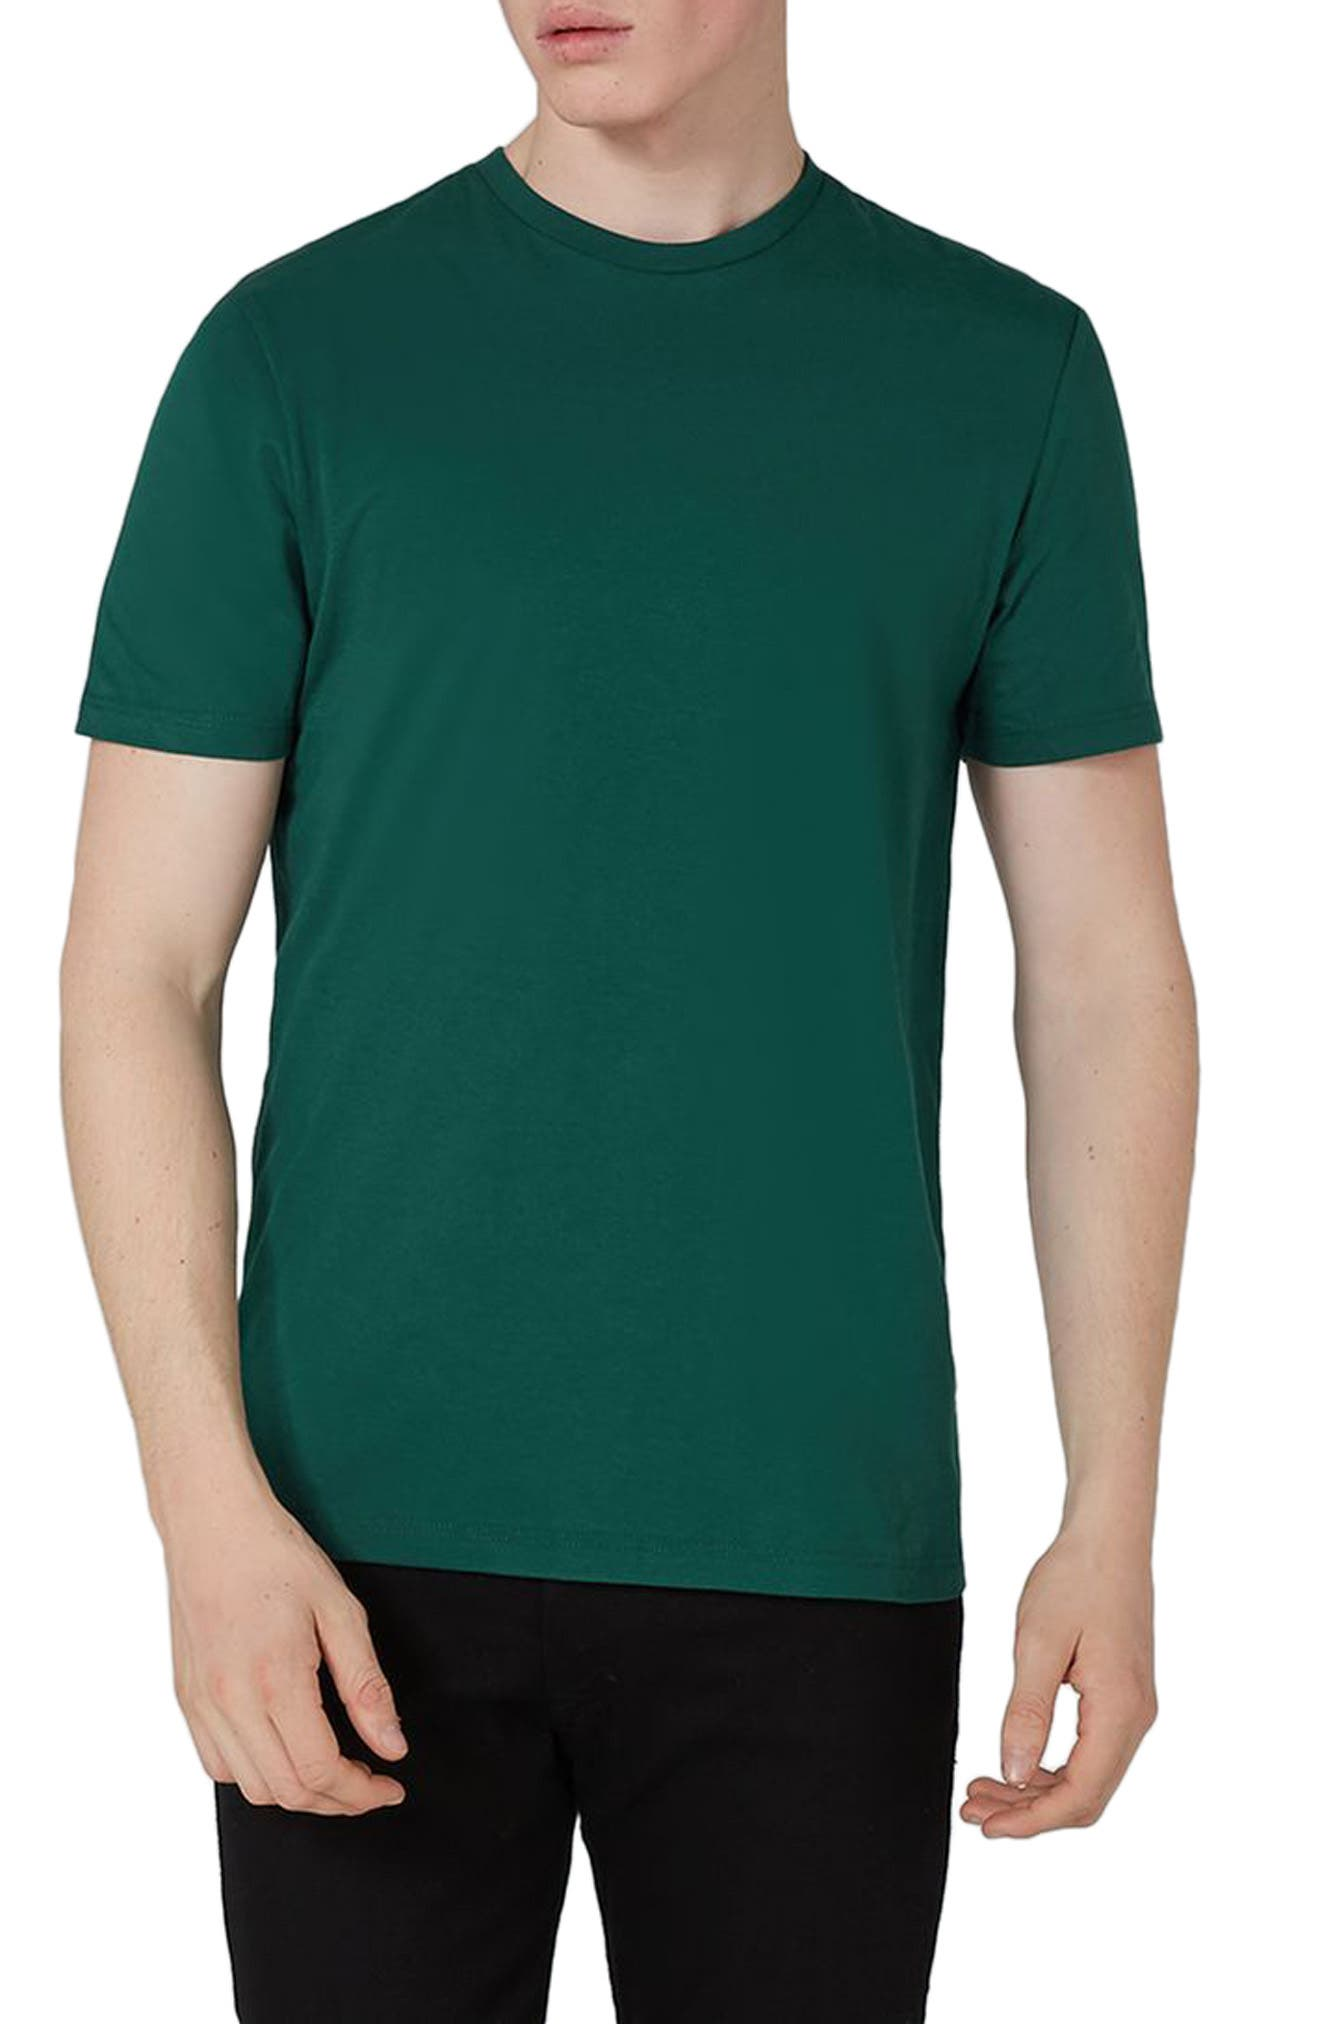 Green All Topman at Nordstrom | Nordstrom